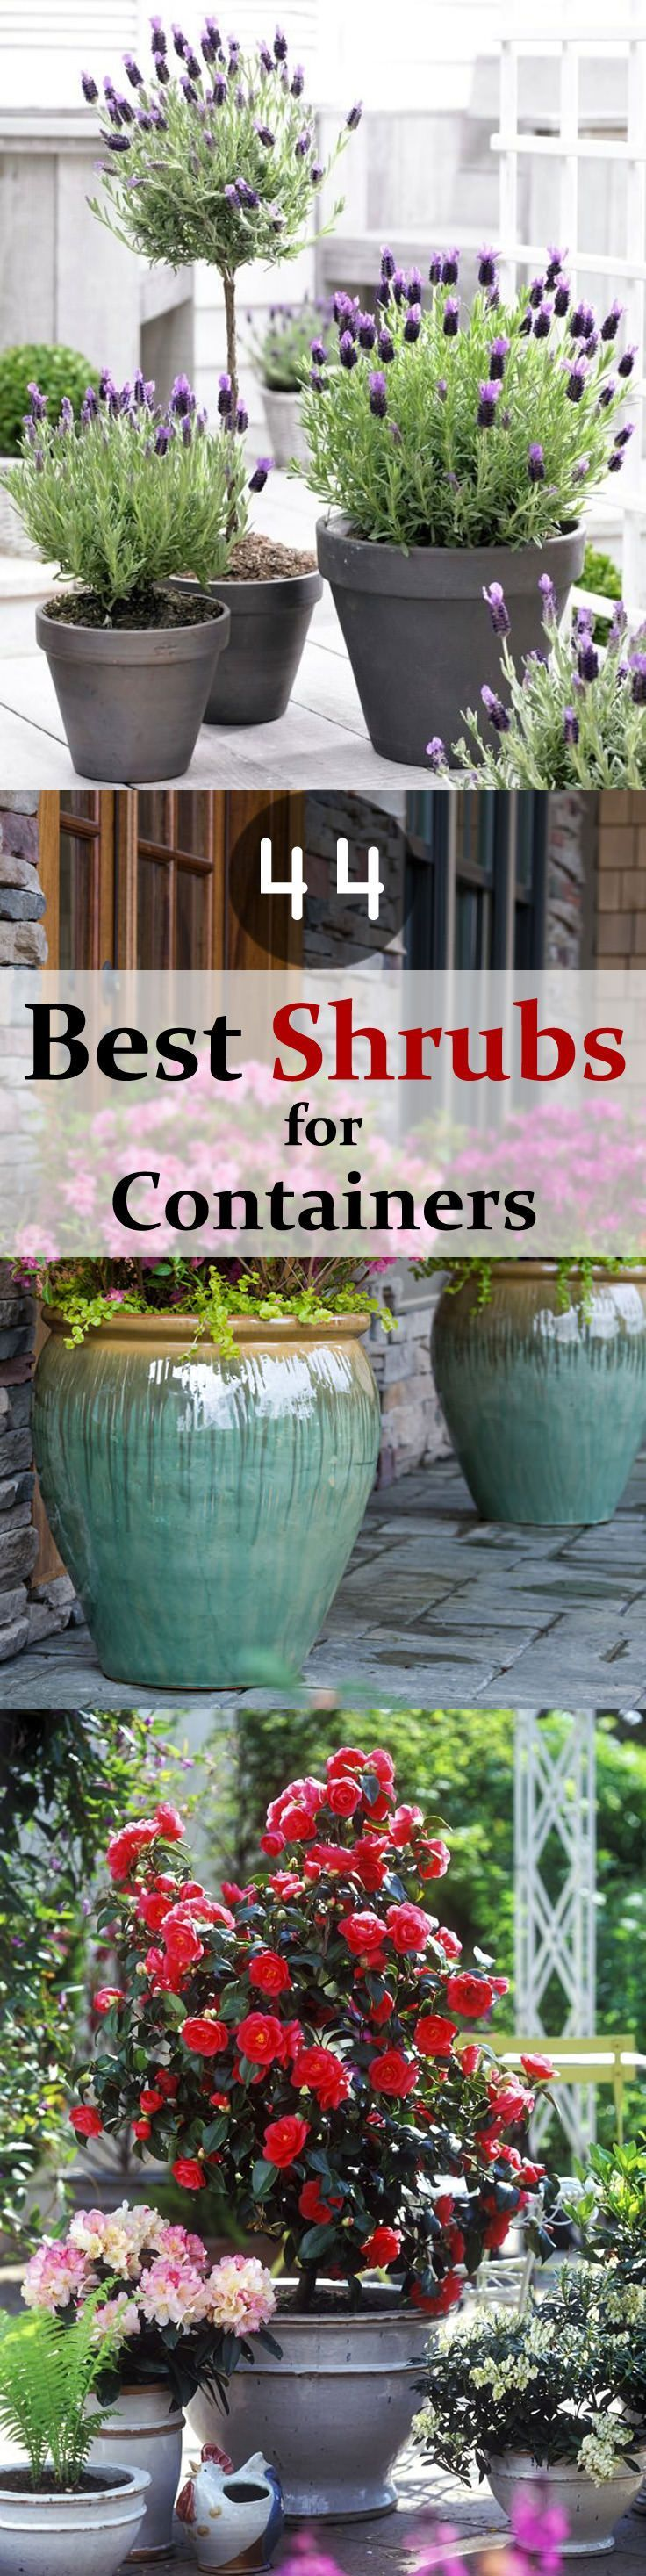 44 Best Shrubs for Containers ,  Debbie Alexander